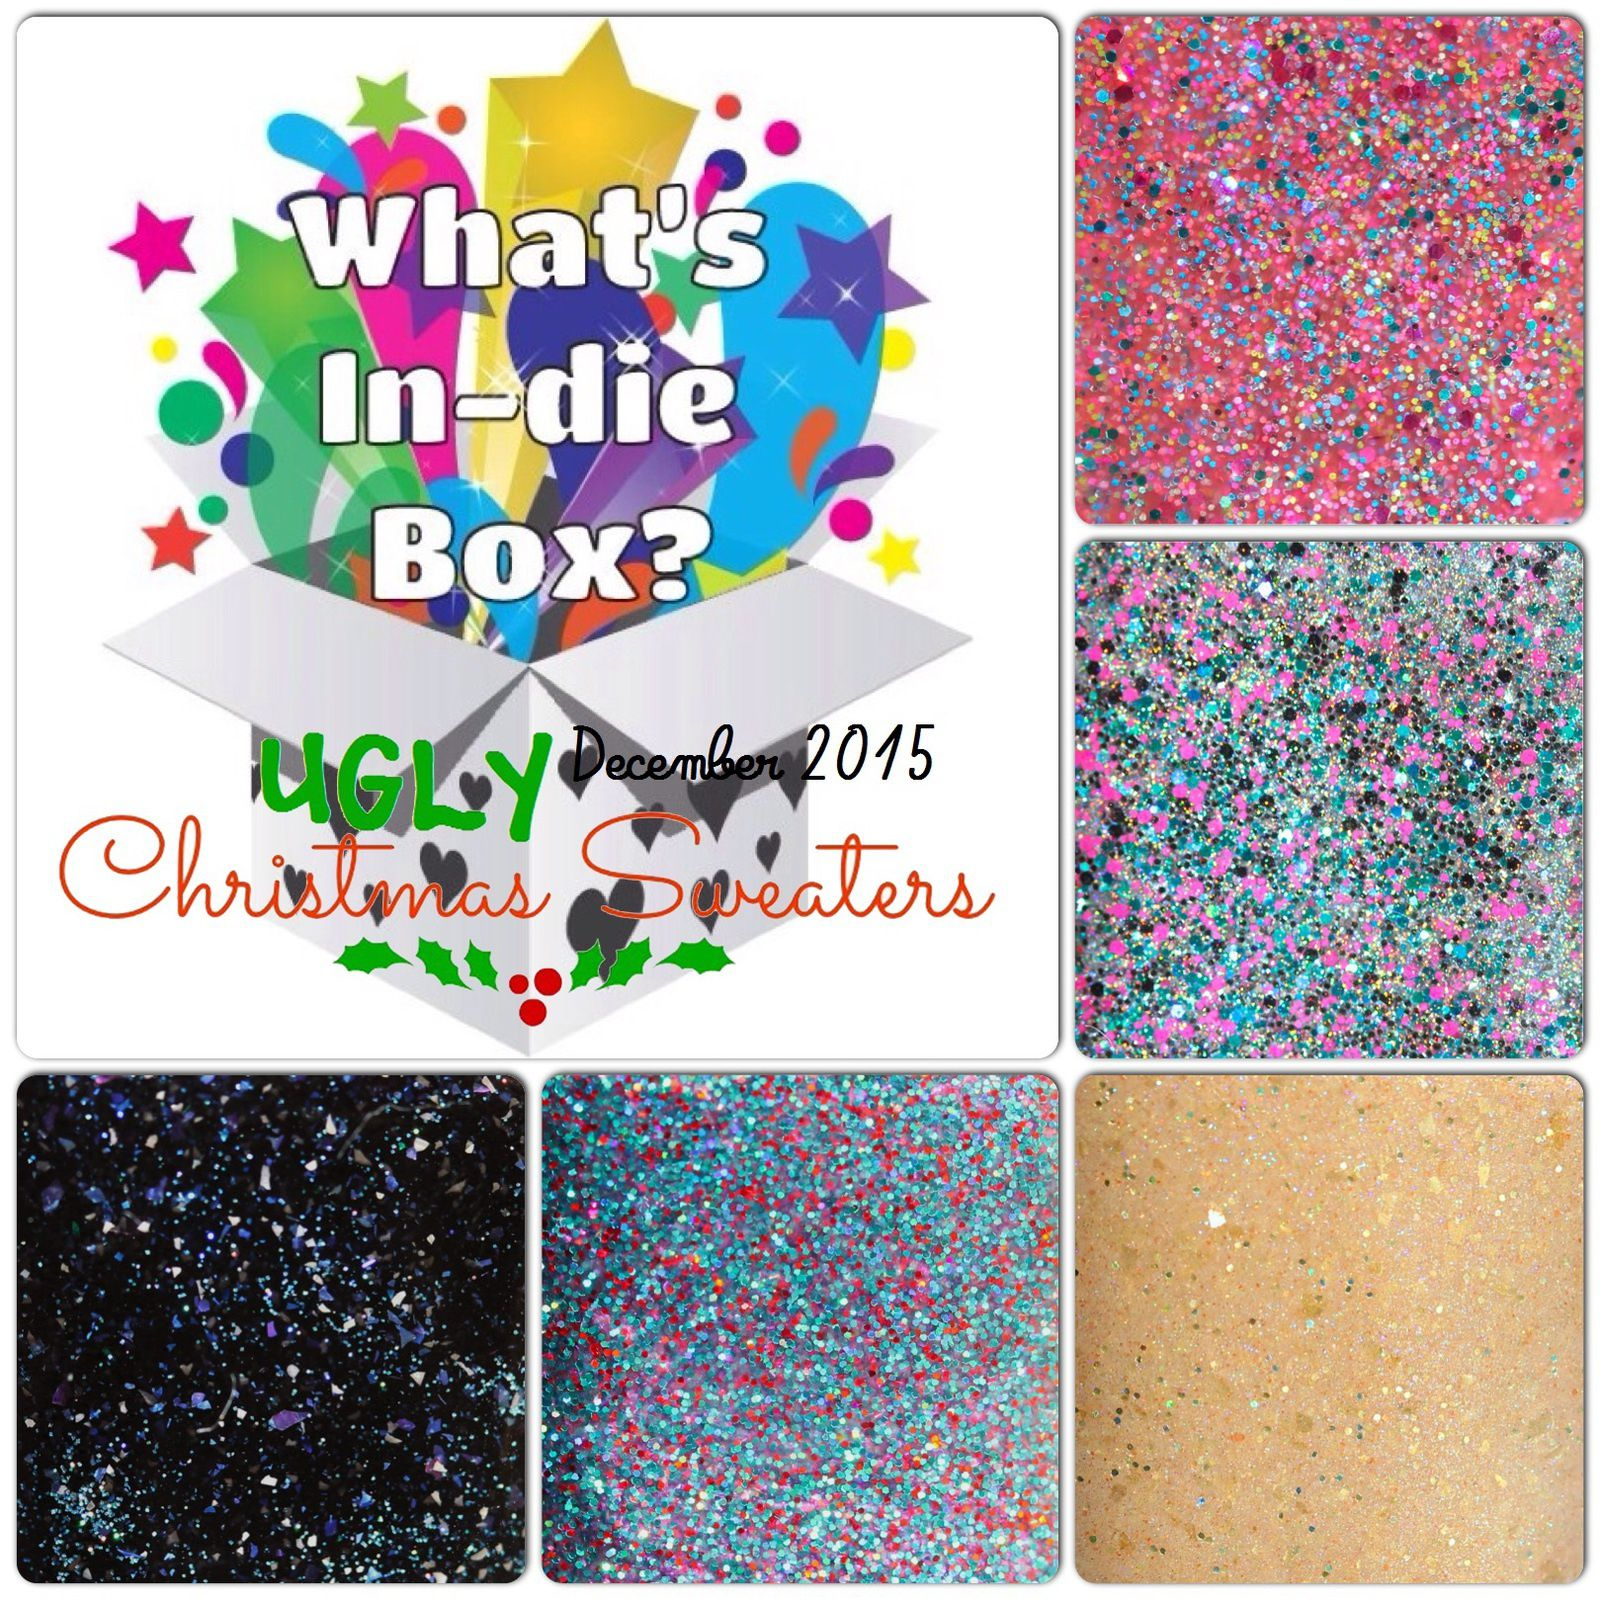 What's Indie Box - December 2015 - Ugly Christmas Sweaters